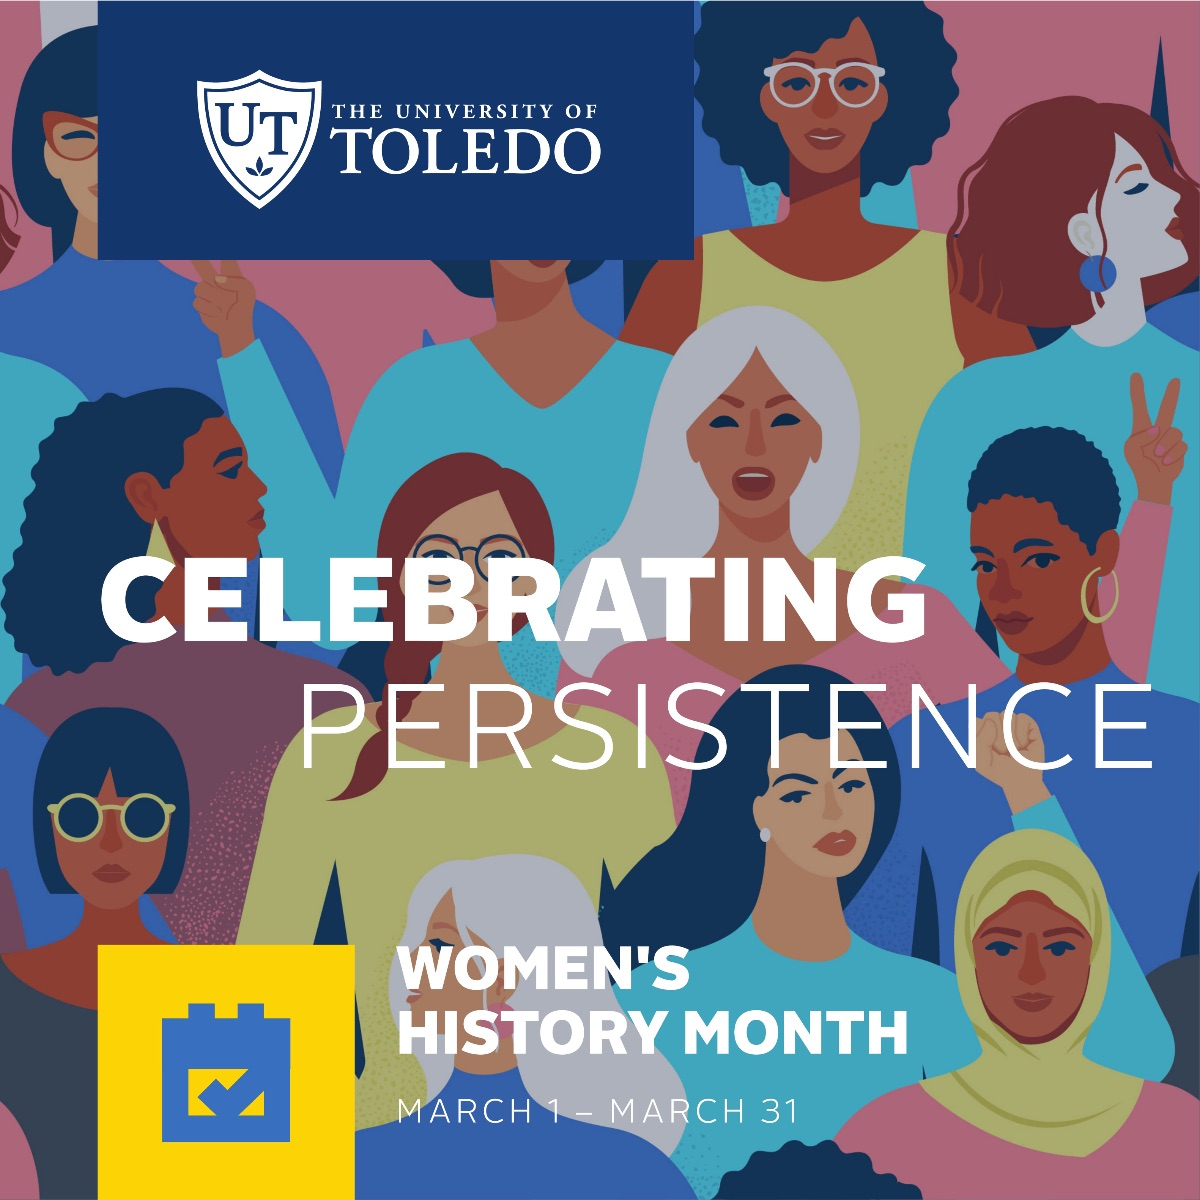 Women's History Month artwork with theme Celebrating Persistence, March 1-31.